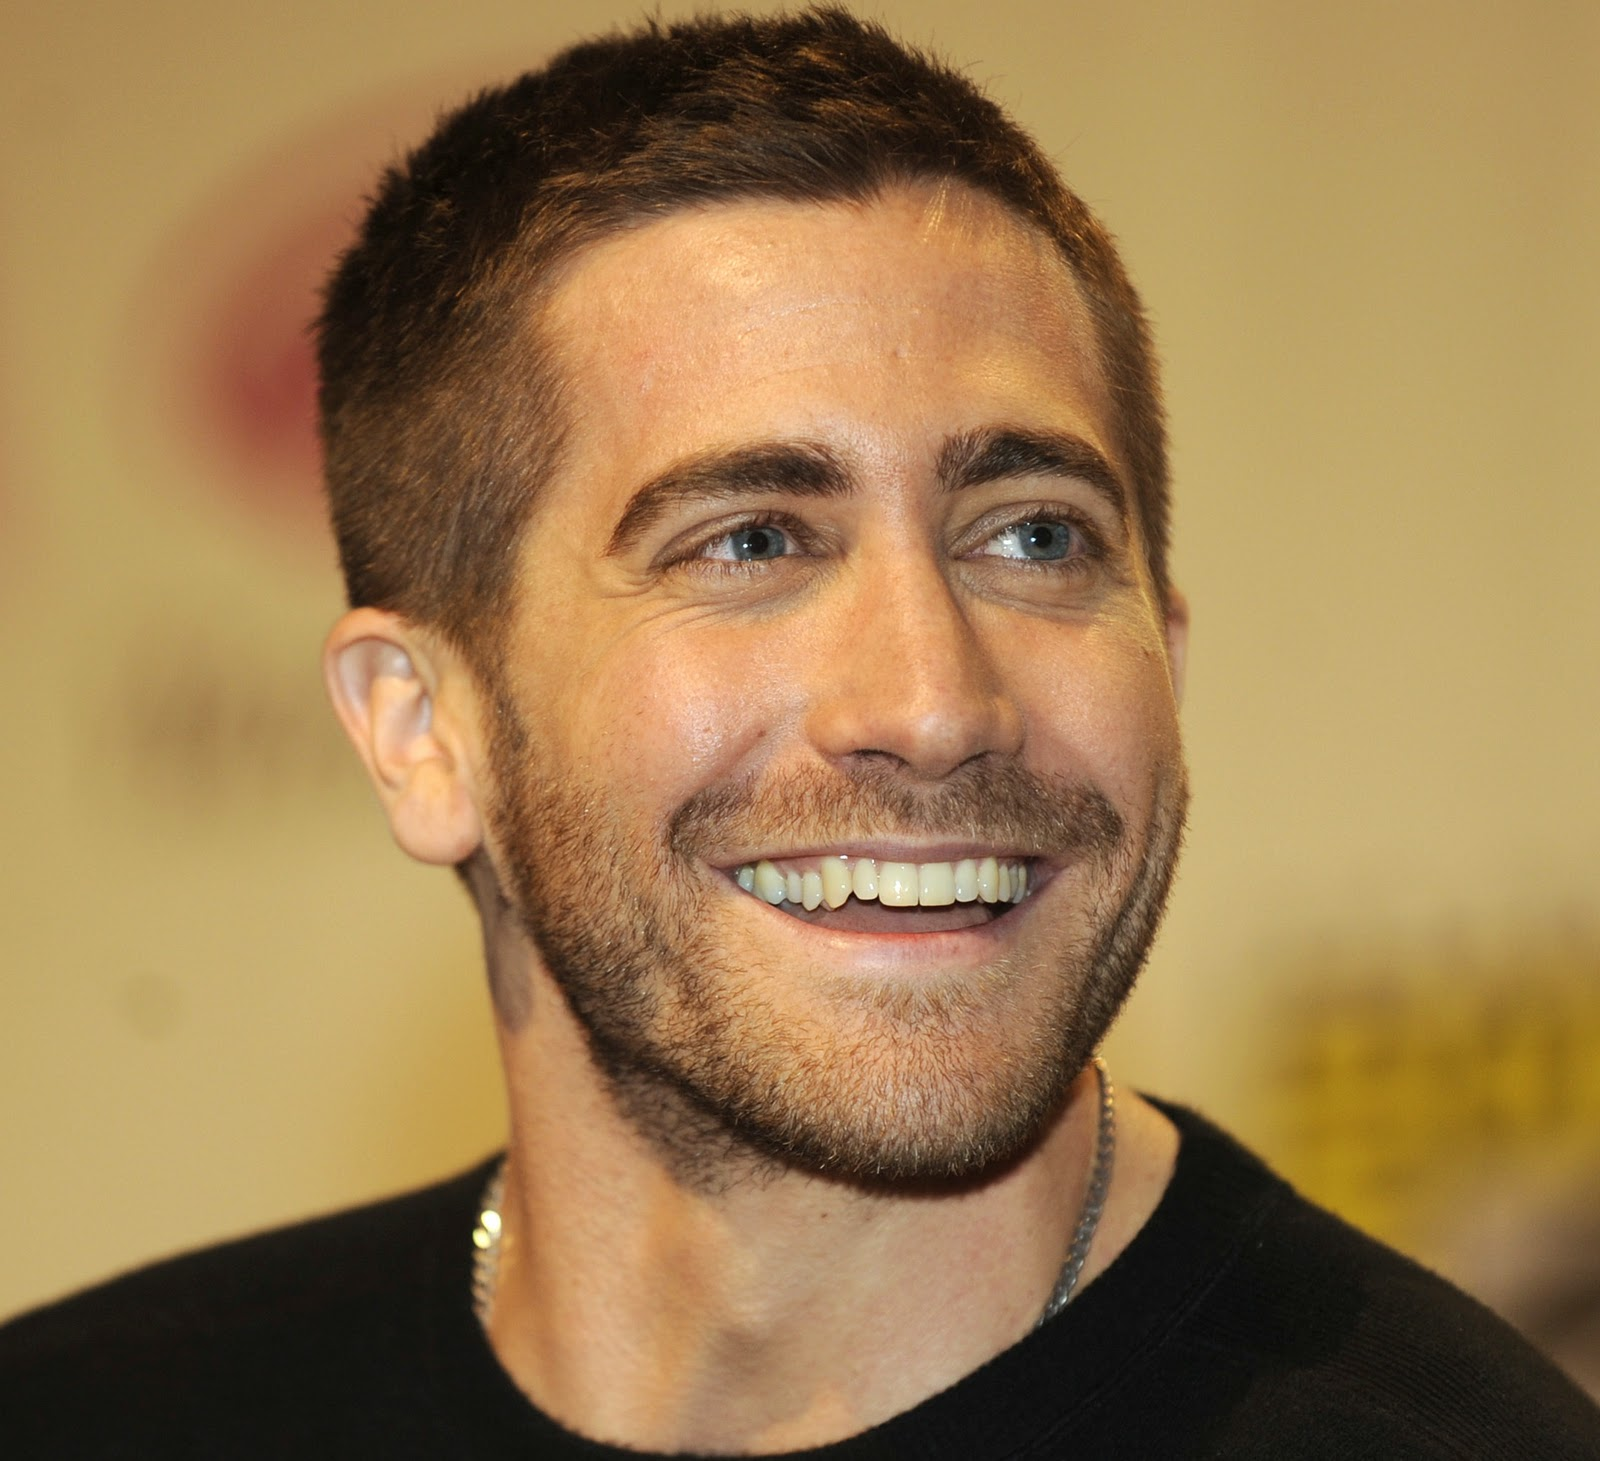 Jake Gyllenhaal Backgrounds